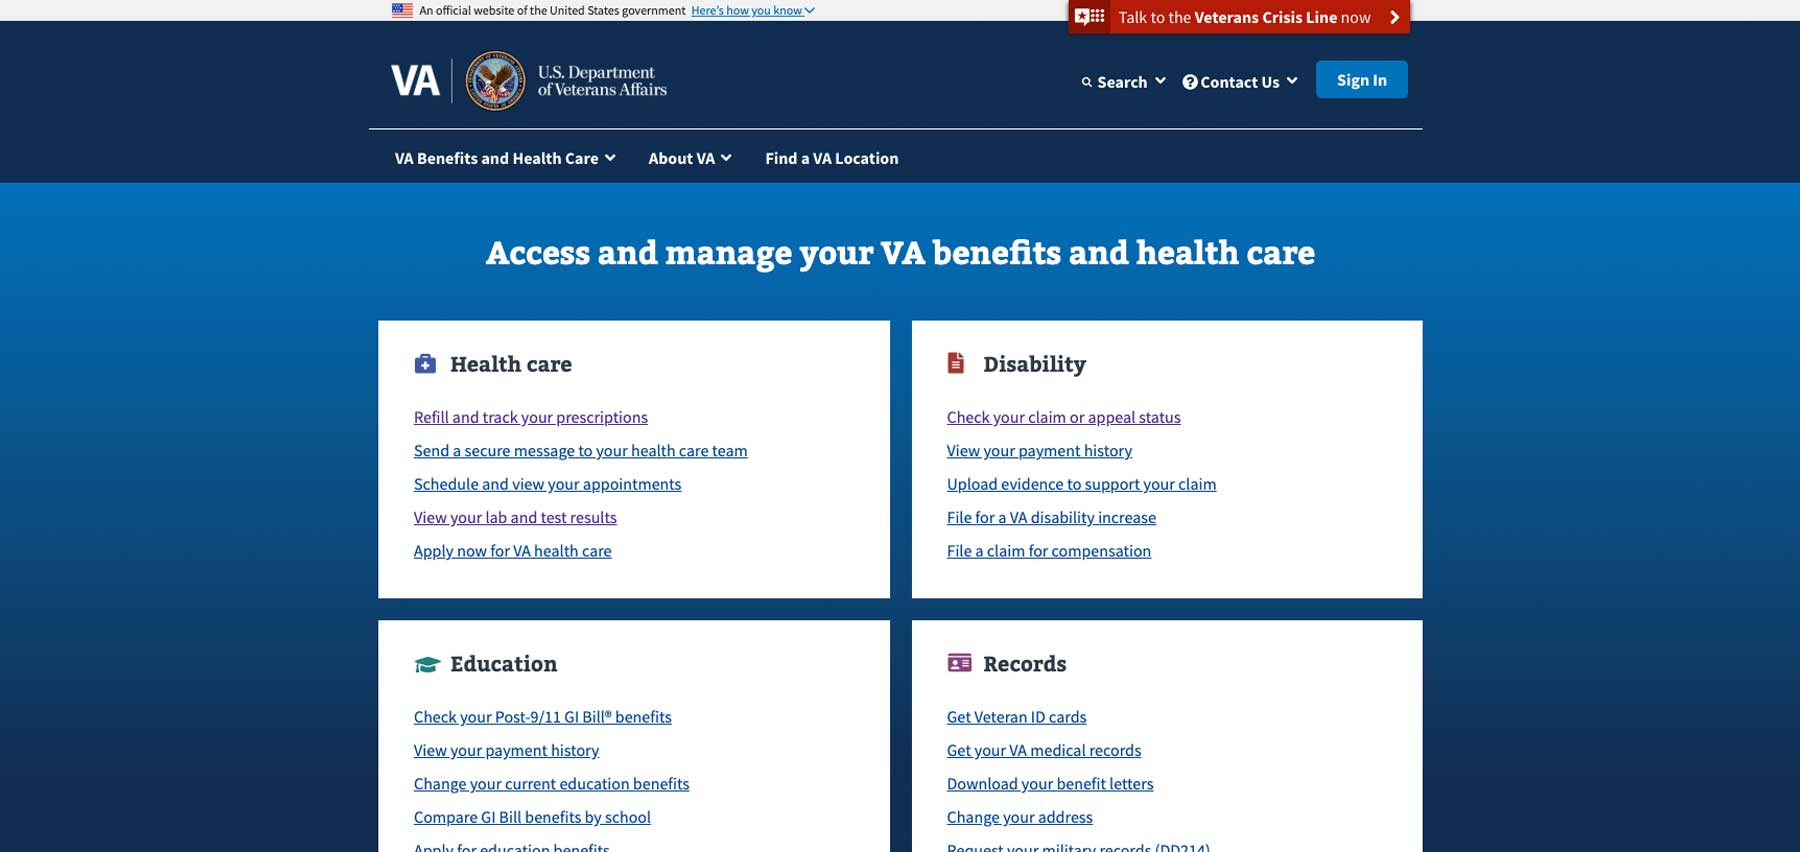 Screenshot of VA.gov site